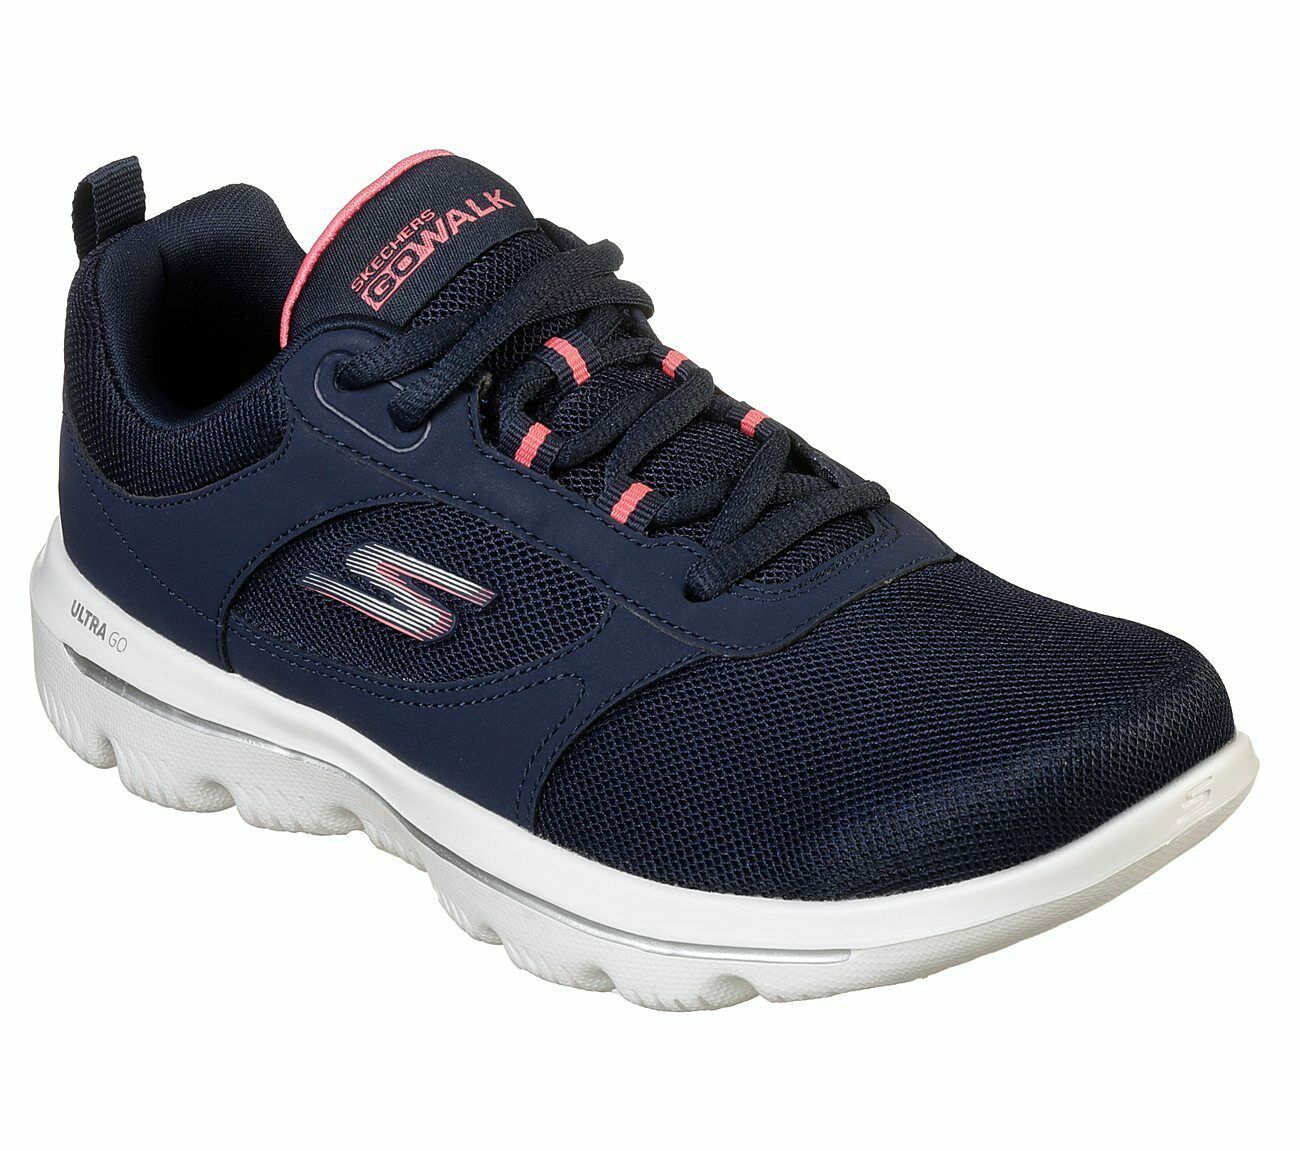 Skechers Navy Coral shoes Women Go Walk Comfort Mesh Casual Sporty Lace Up 15734